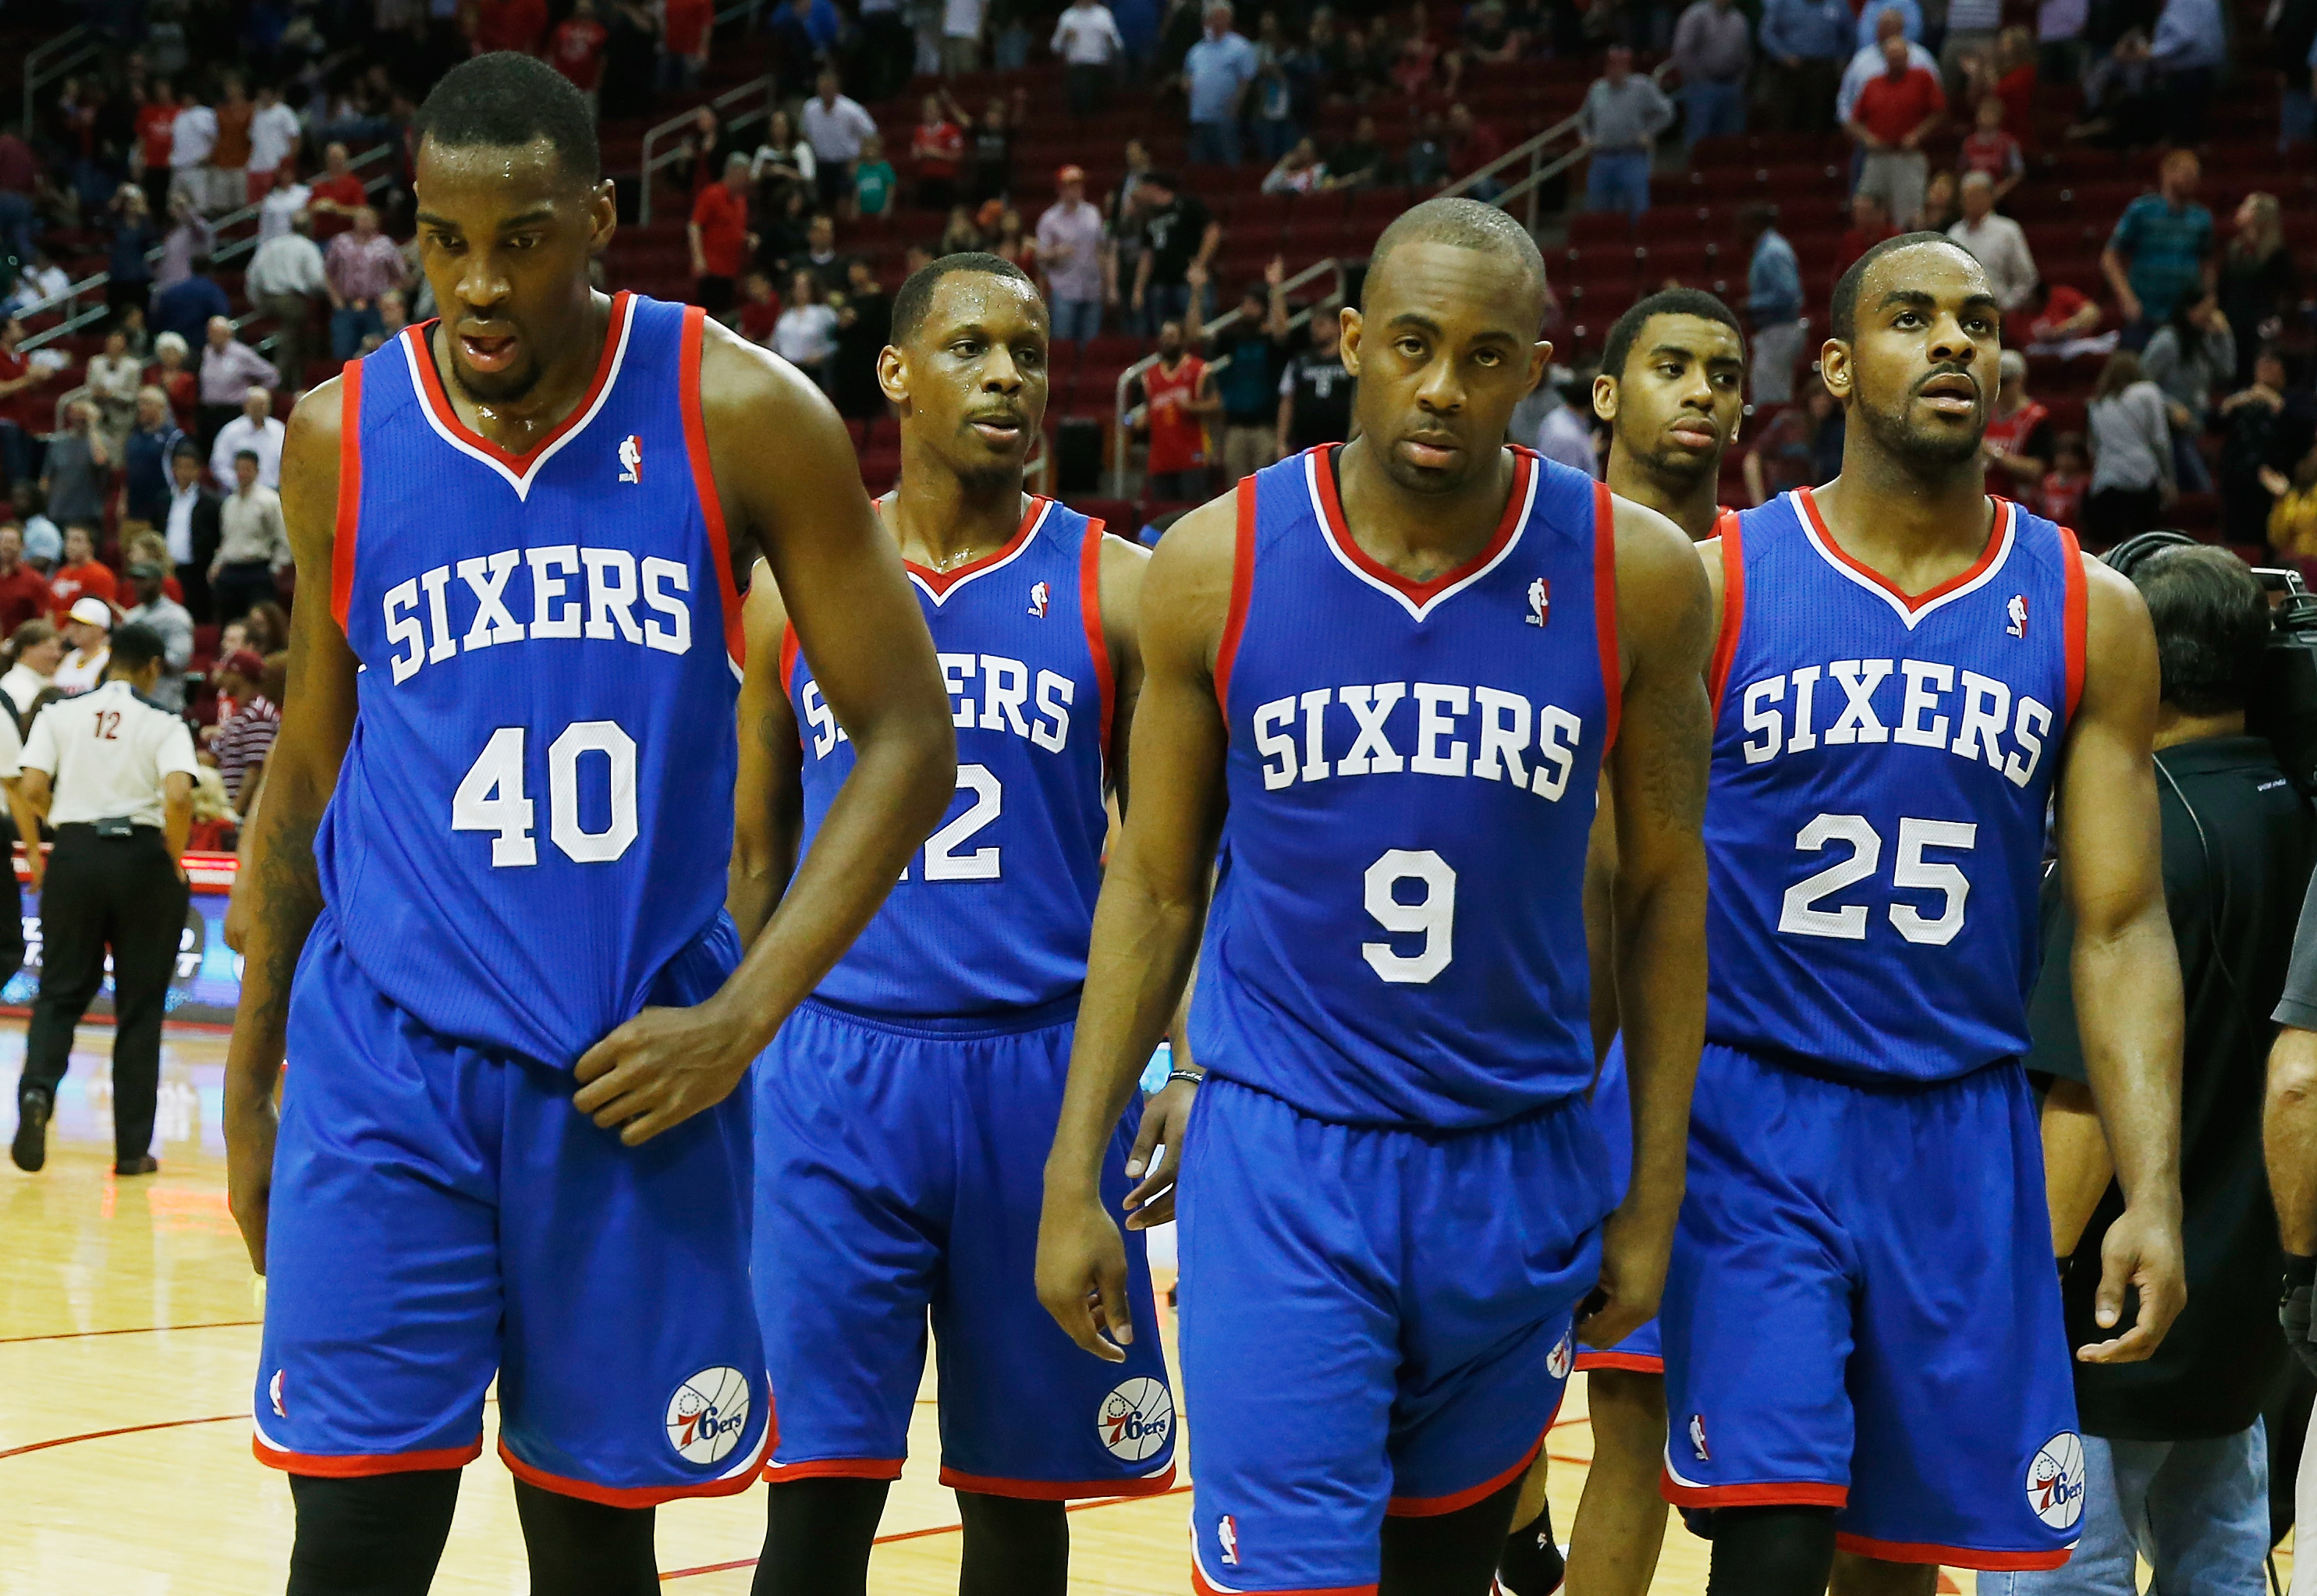 HOUSTON, TX - MARCH 27:  Jarvis Varnado #40, James Nunnally #12, James Anderson #9 and Elliot Williams #25 of the Philadelphia 76ers walk off the court after losing to the Houston Rockets 120-98 at the Toyota Center on March 27, 2014 in Houston, Texas.  T